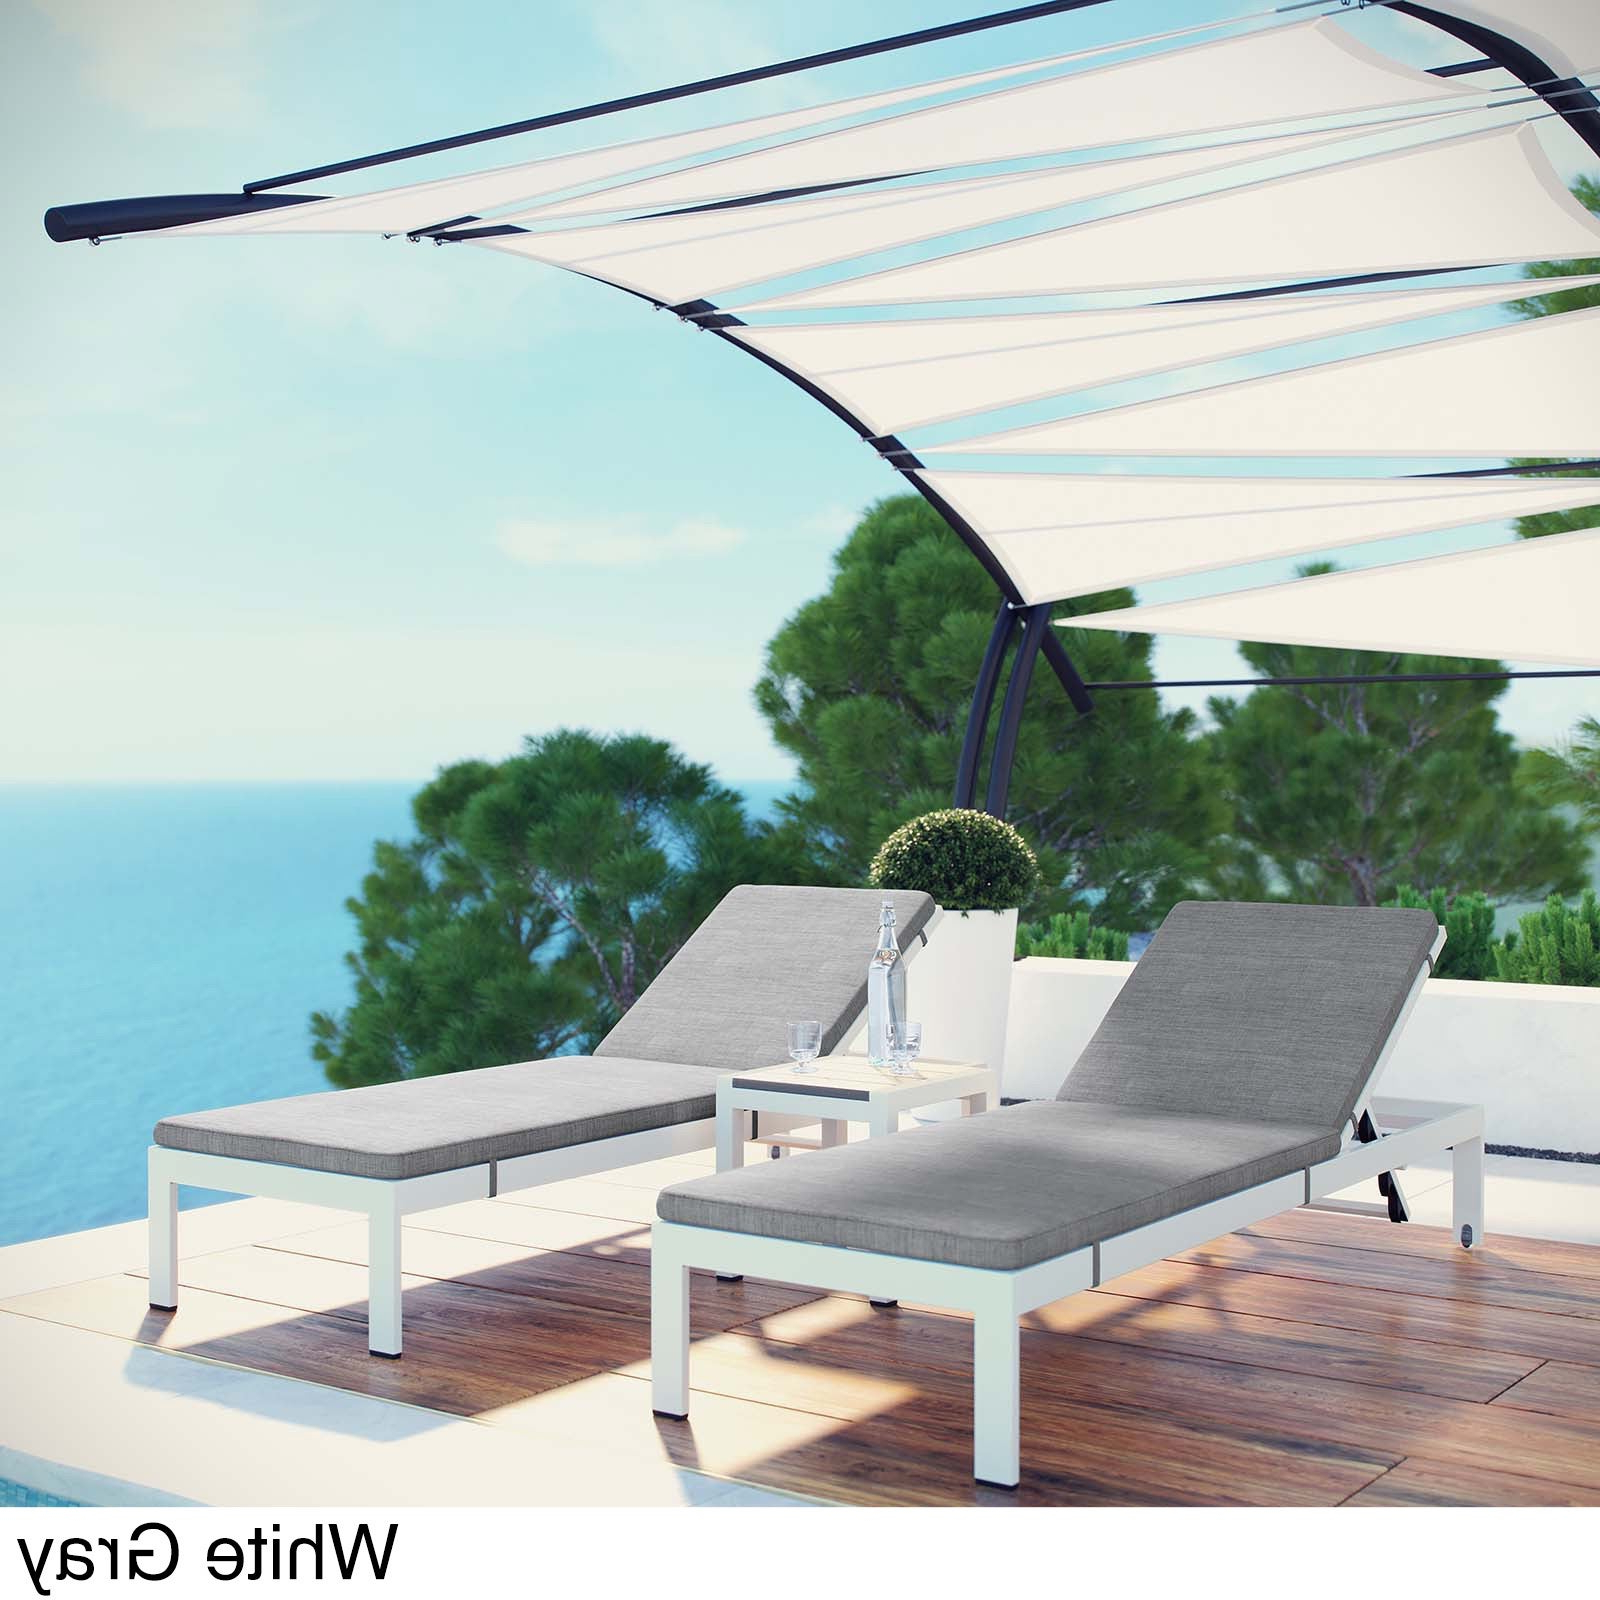 Shore 3 Piece Outdoor Patio Aluminum Chaise With Cushions Inside Favorite Shore Alumunium Outdoor 3 Piece Chaise Lounger Sets (View 15 of 25)